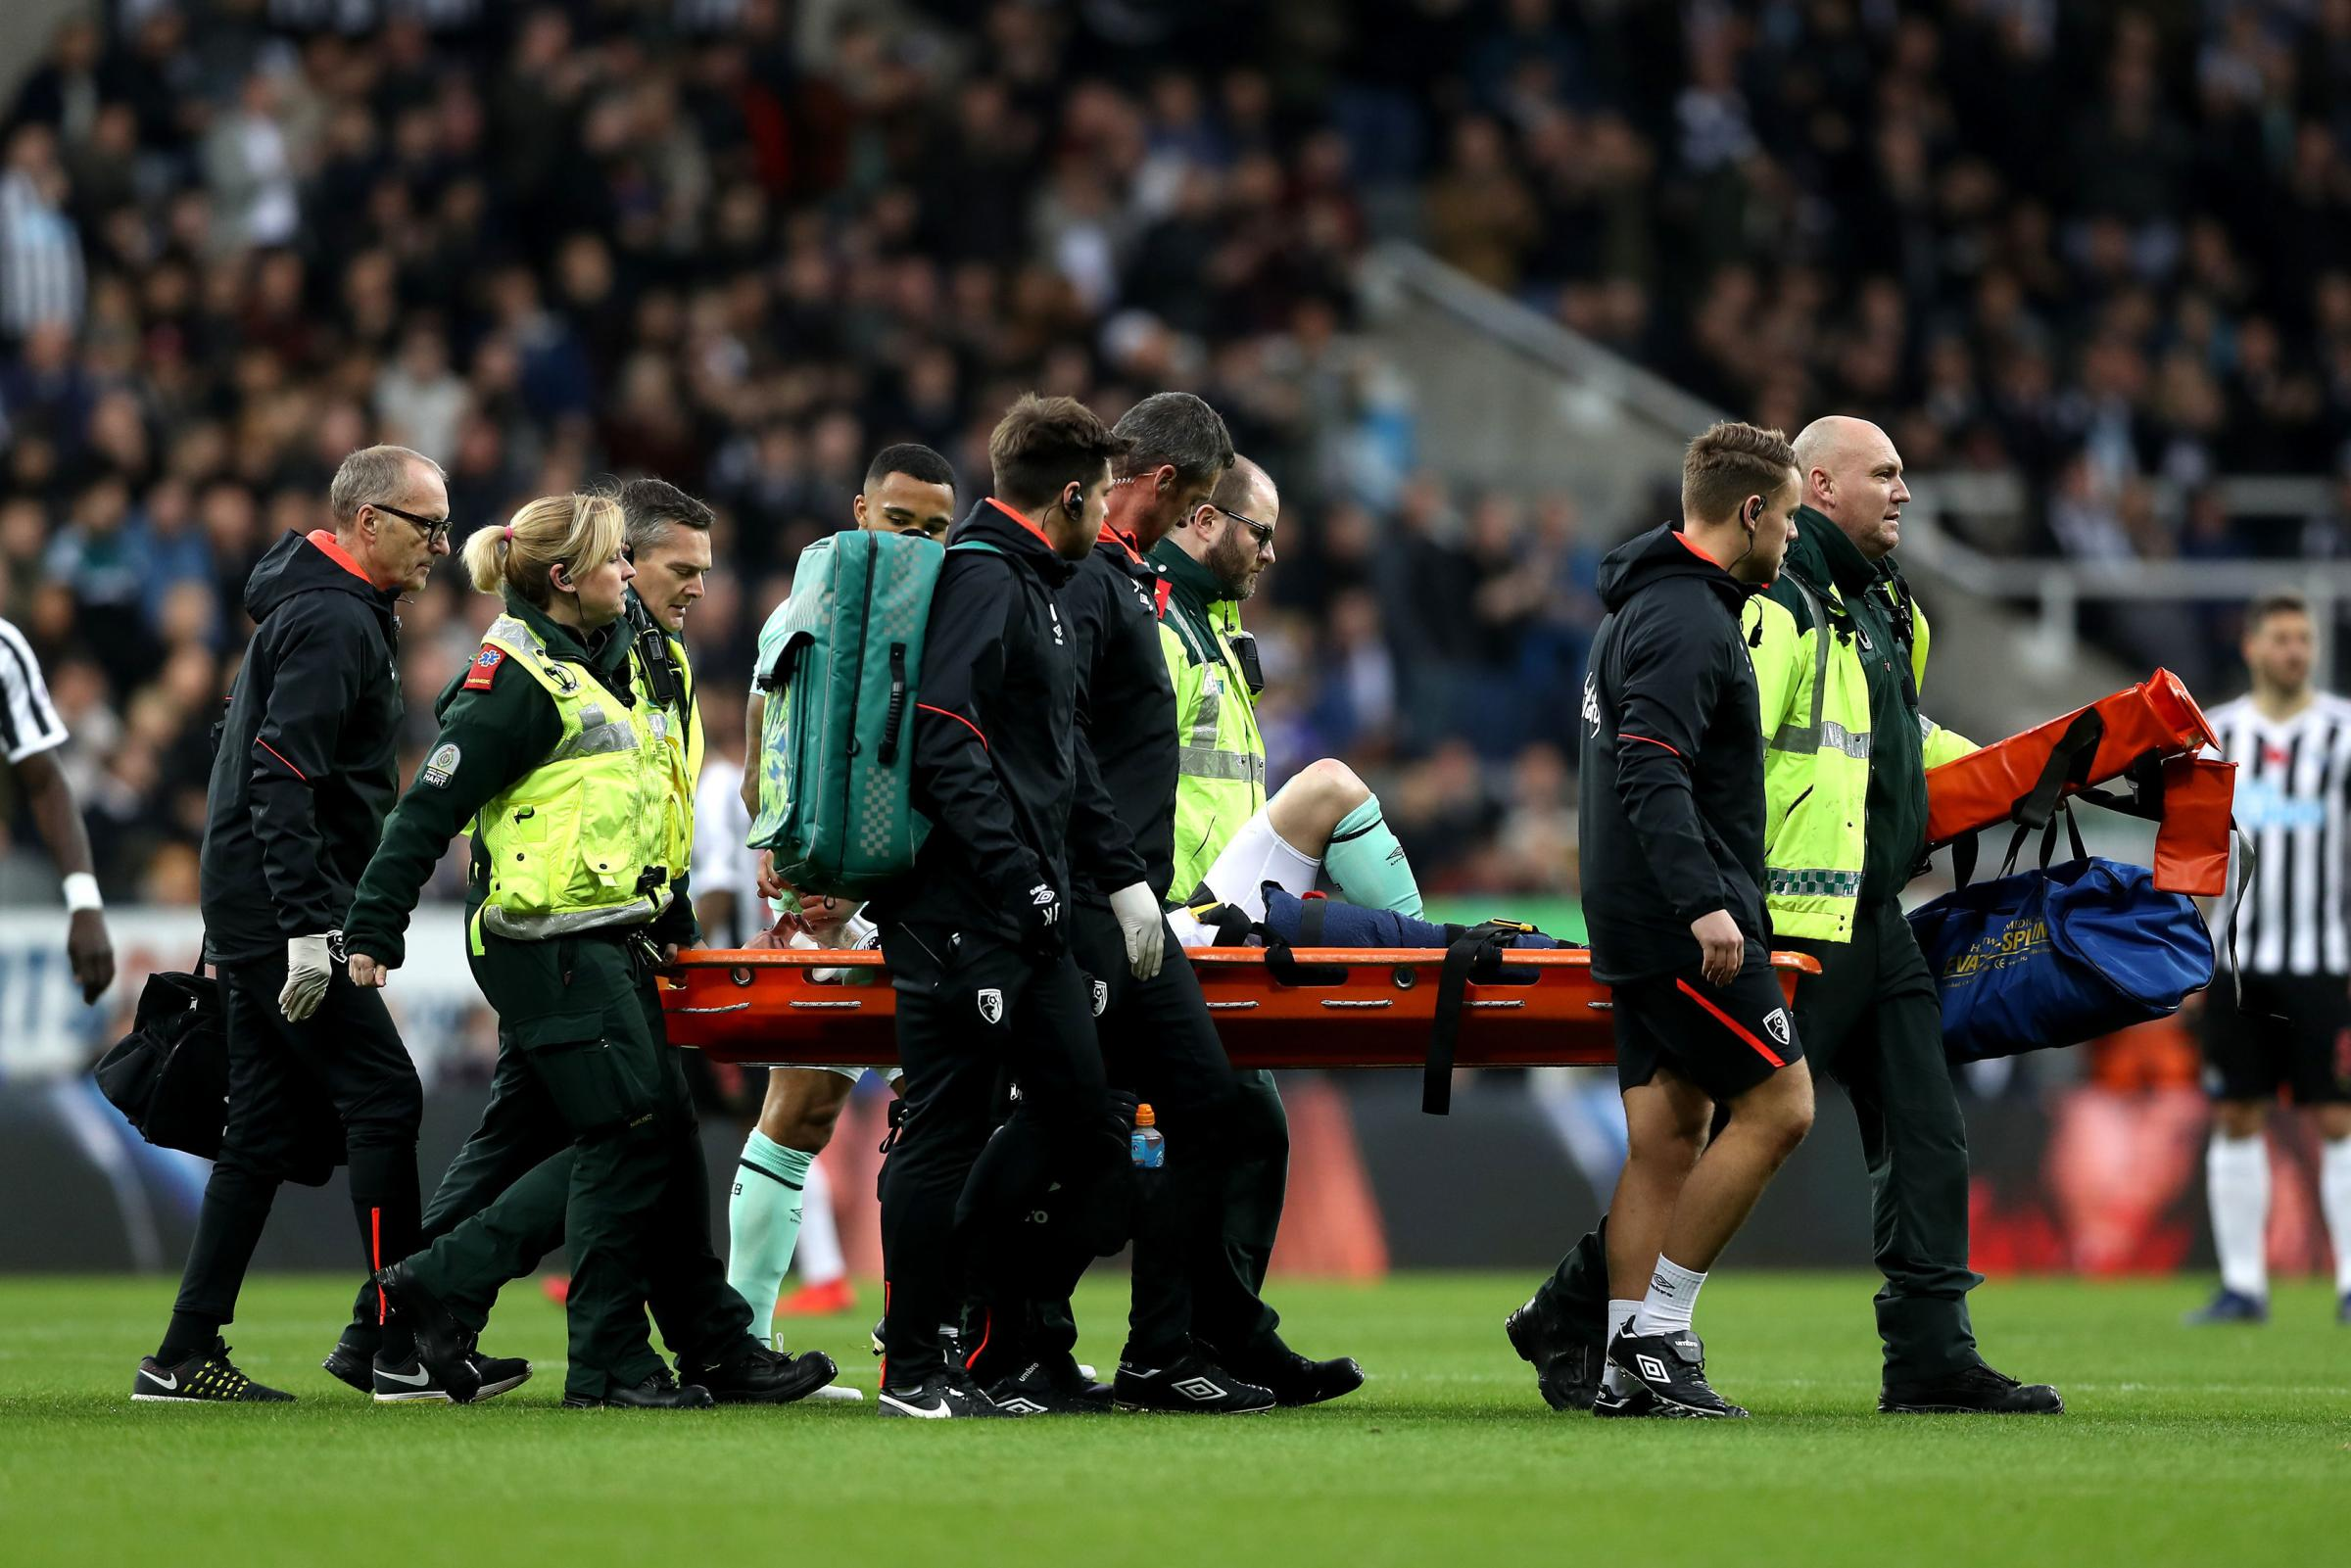 Smith awaits verdict on knee injury after seeing specialist